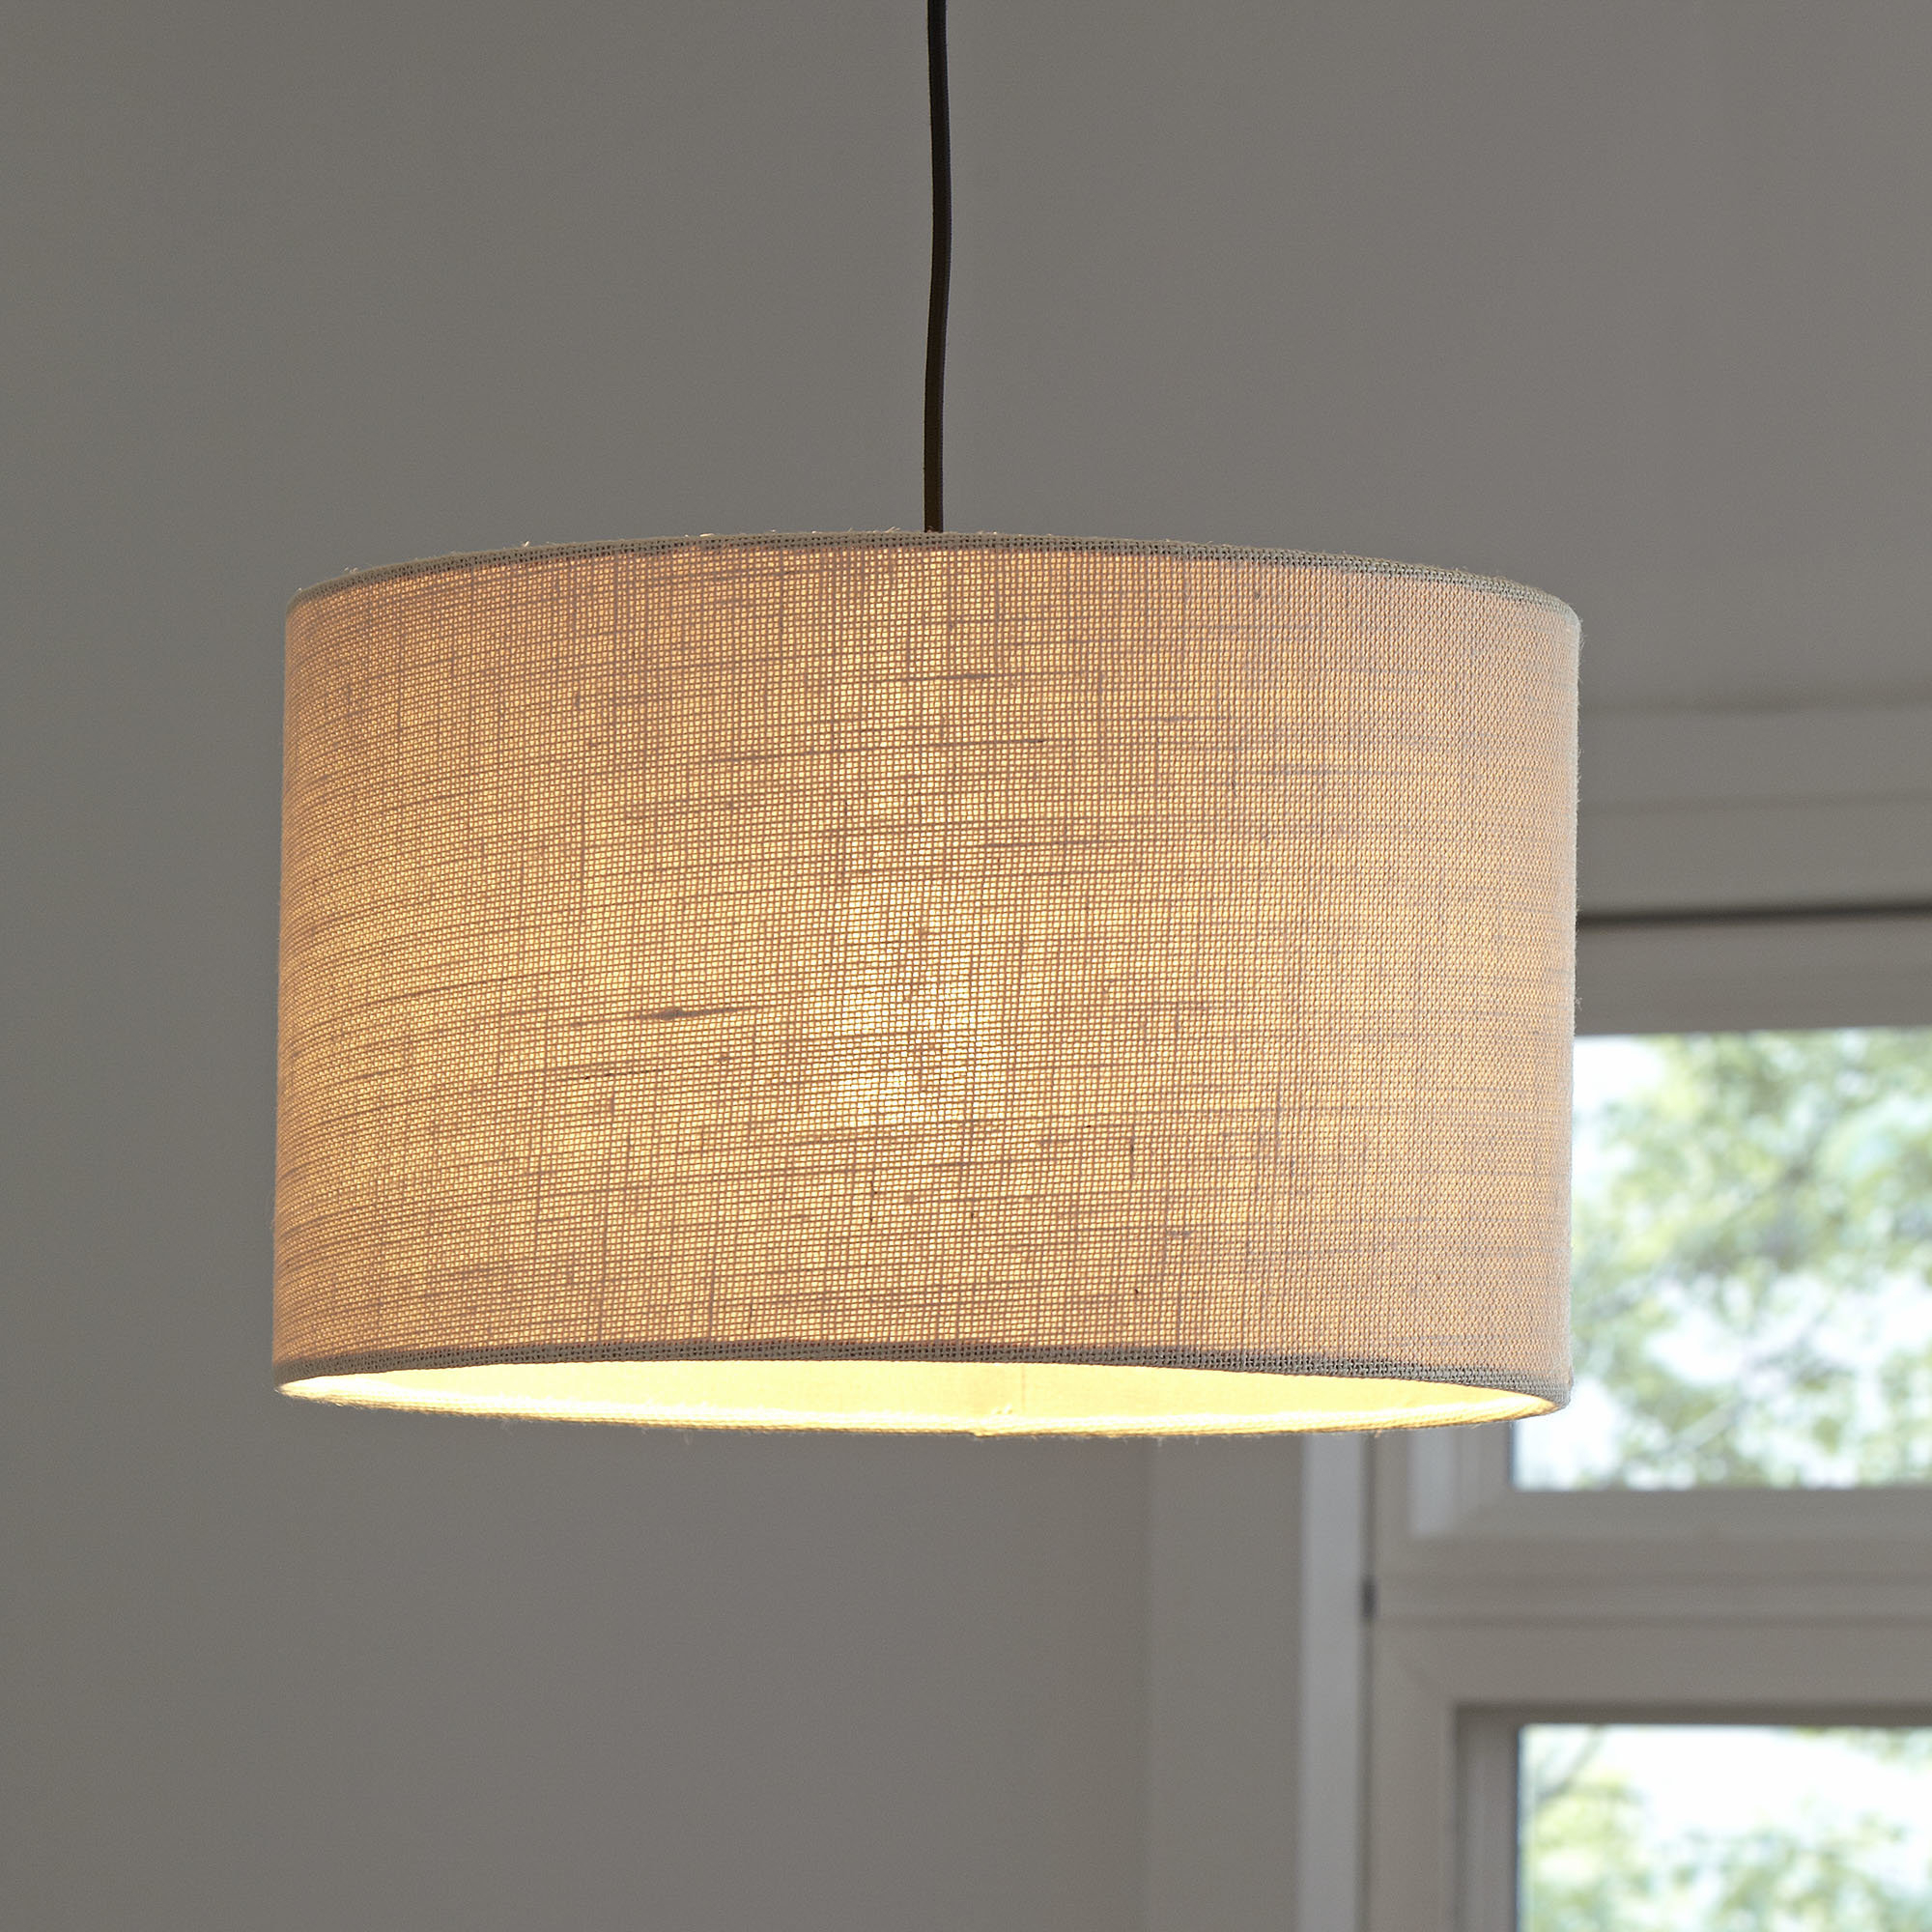 Most Popular Kasey 3 Light Single Drum Pendants Regarding Spofford 1 Light Single Drum Pendant (View 19 of 25)